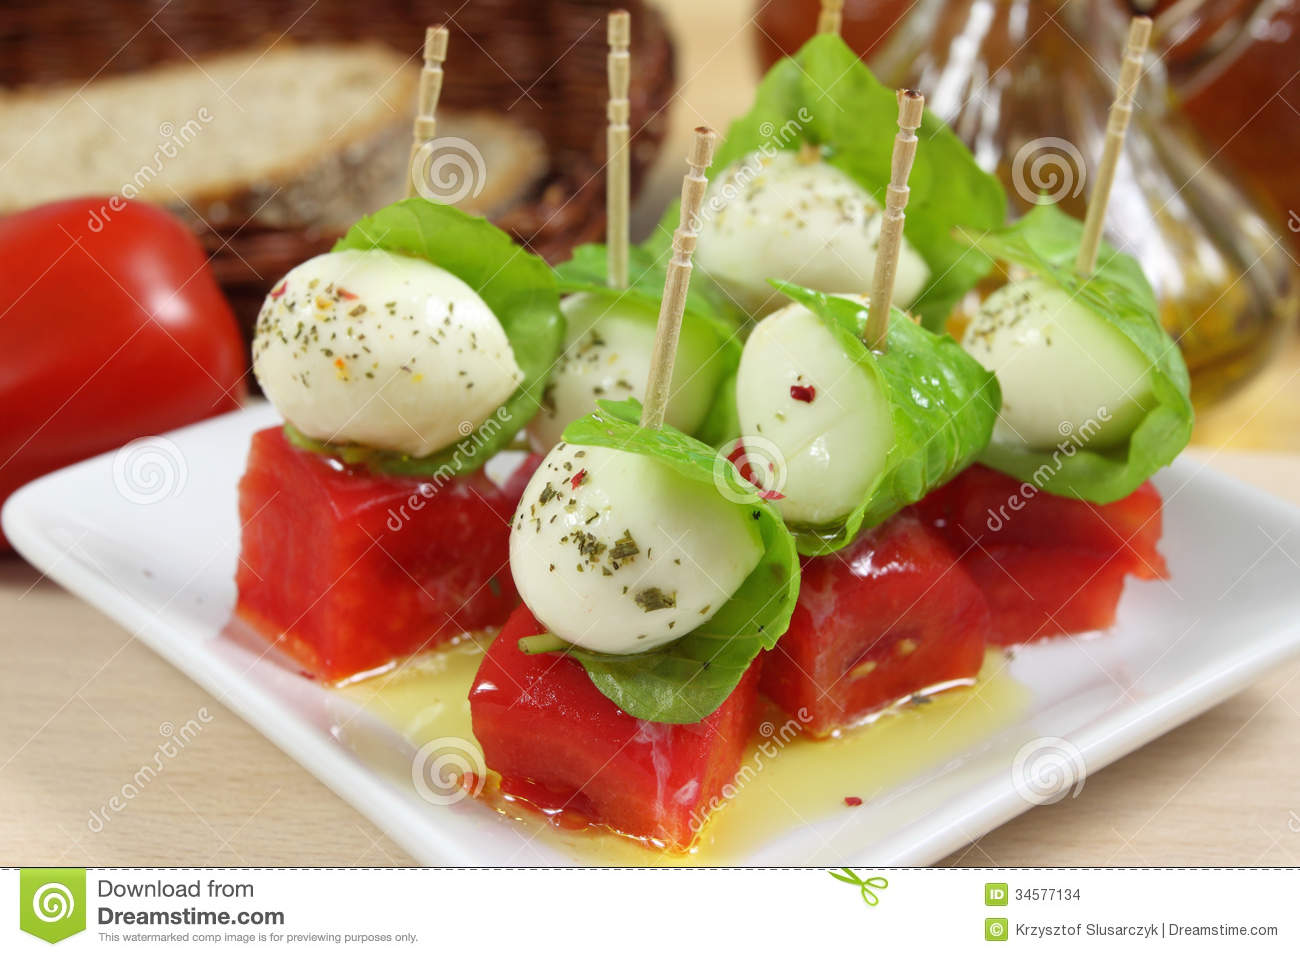 Appetizer with mozzarella, tomato and basil.